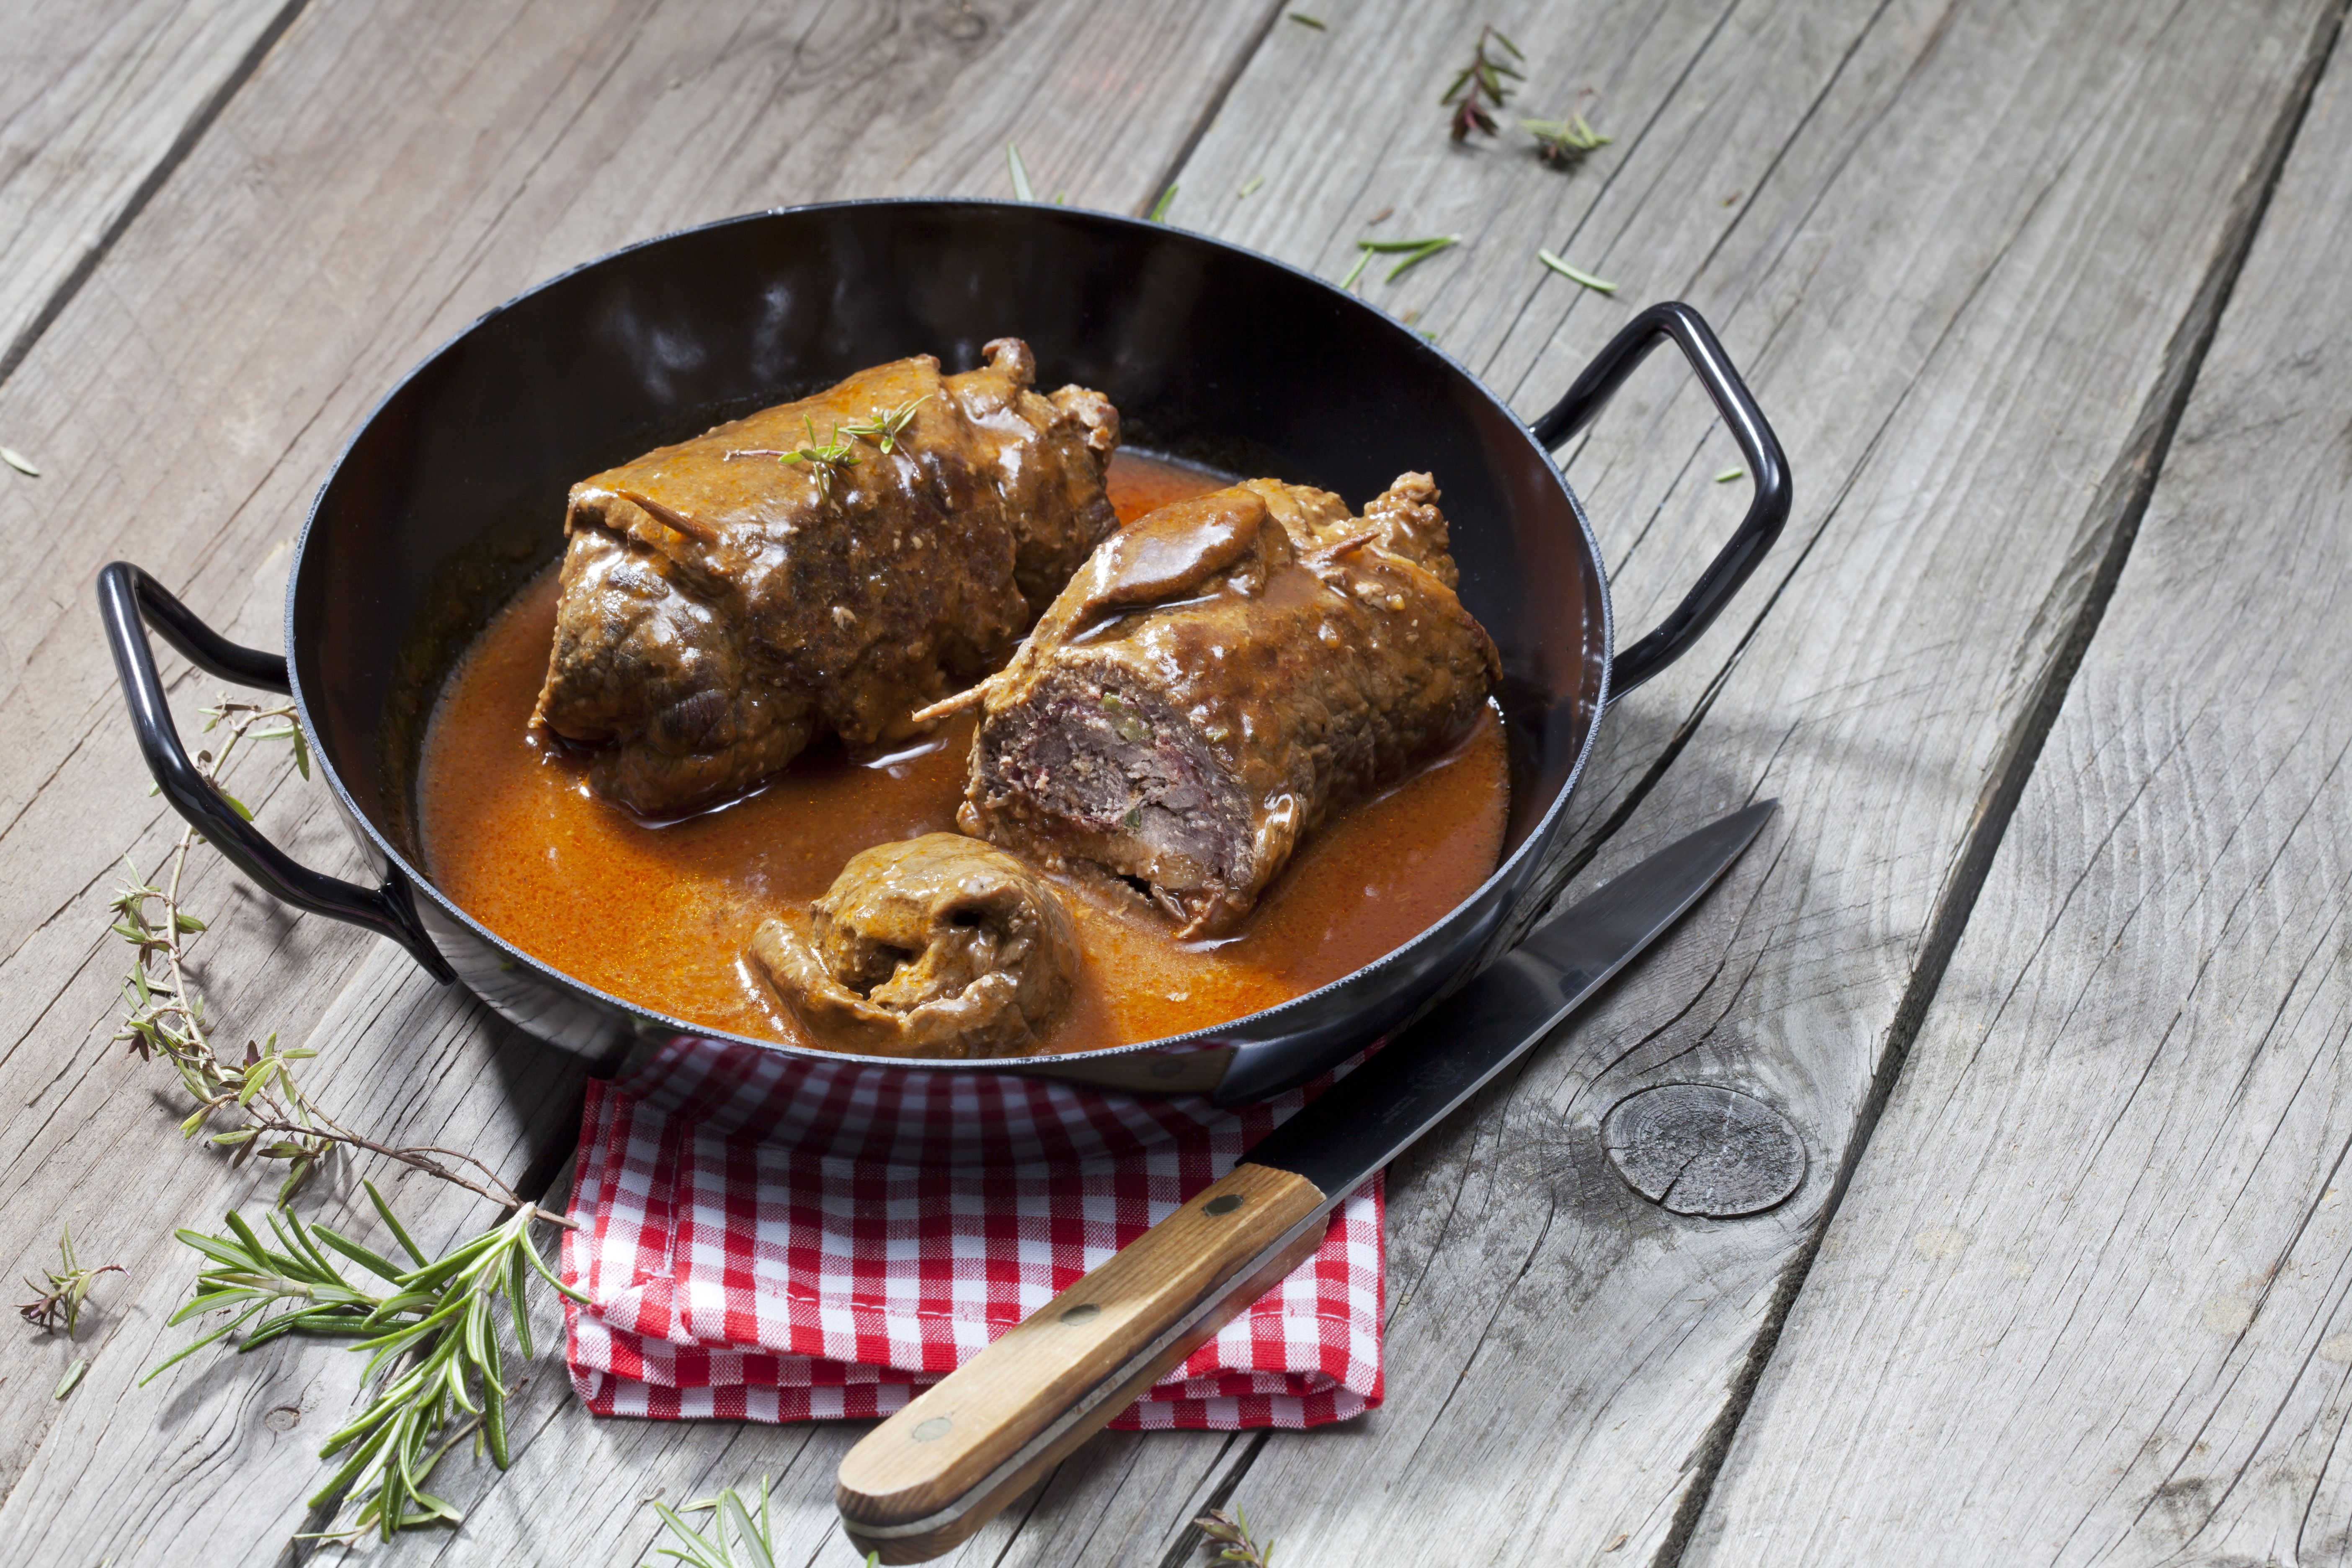 Beef roulades in braising pan, rosemary, kitchen towel and knife on wood